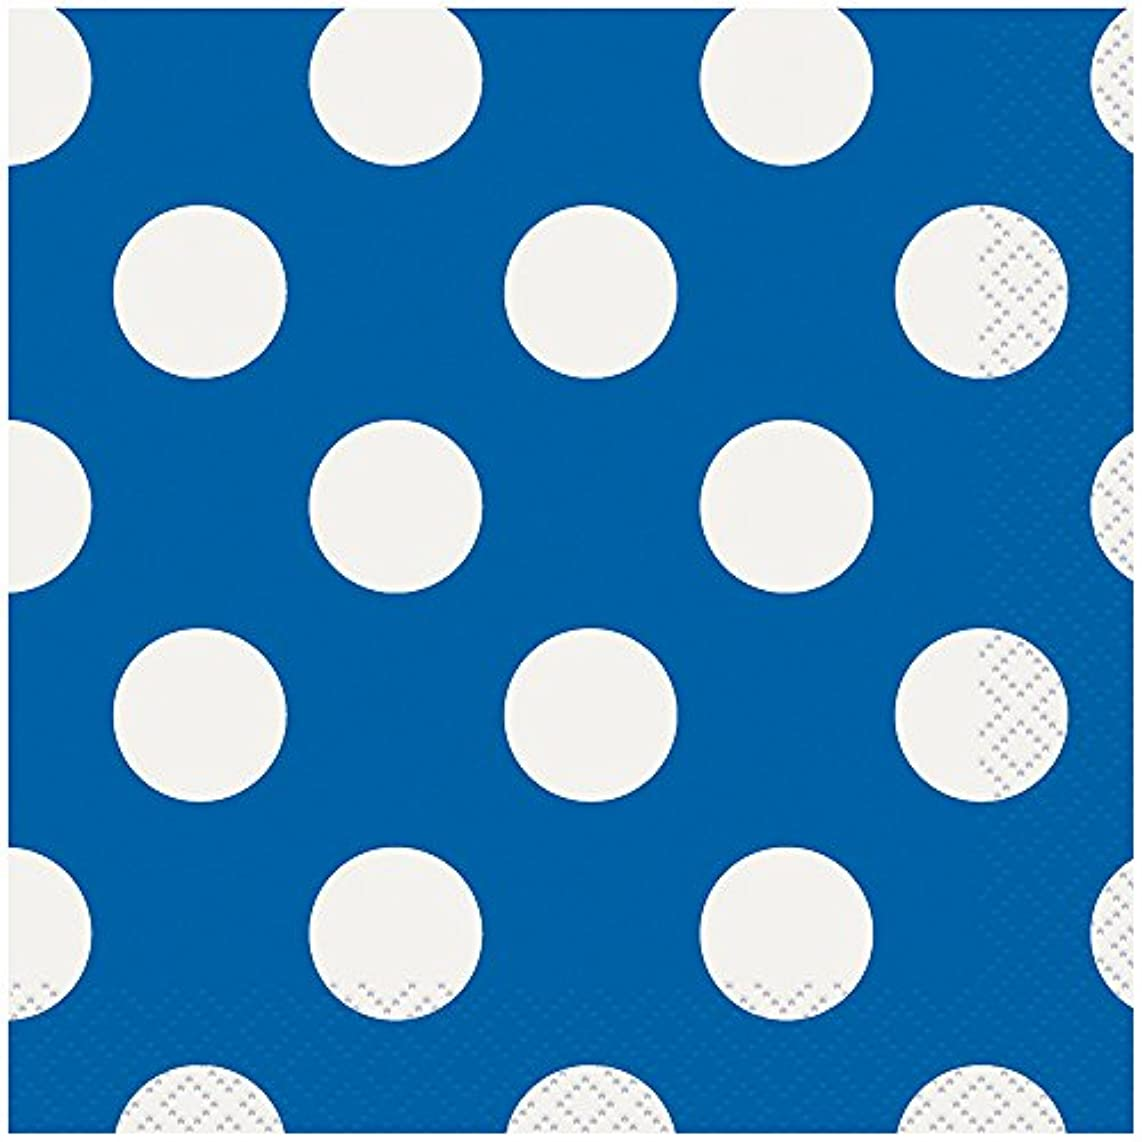 Royal Blue Polka Dot Beverage Napkins, 40ct